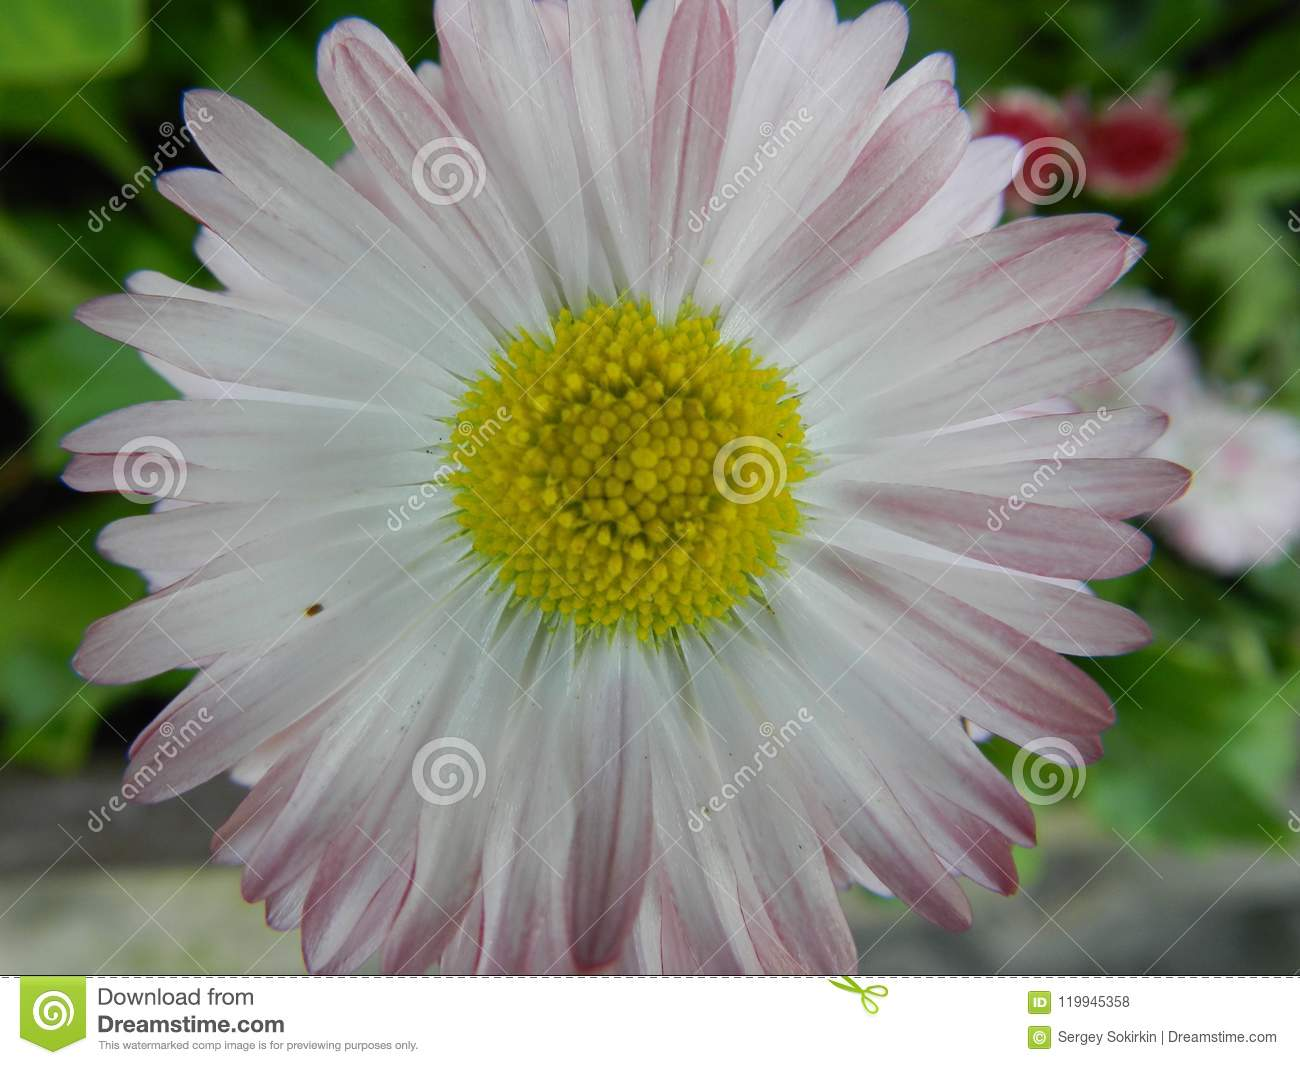 Daisy, flower, garden, lawn, meadow, outdoors, bouquet, summer ,, plants, beauty, nature ,, petals